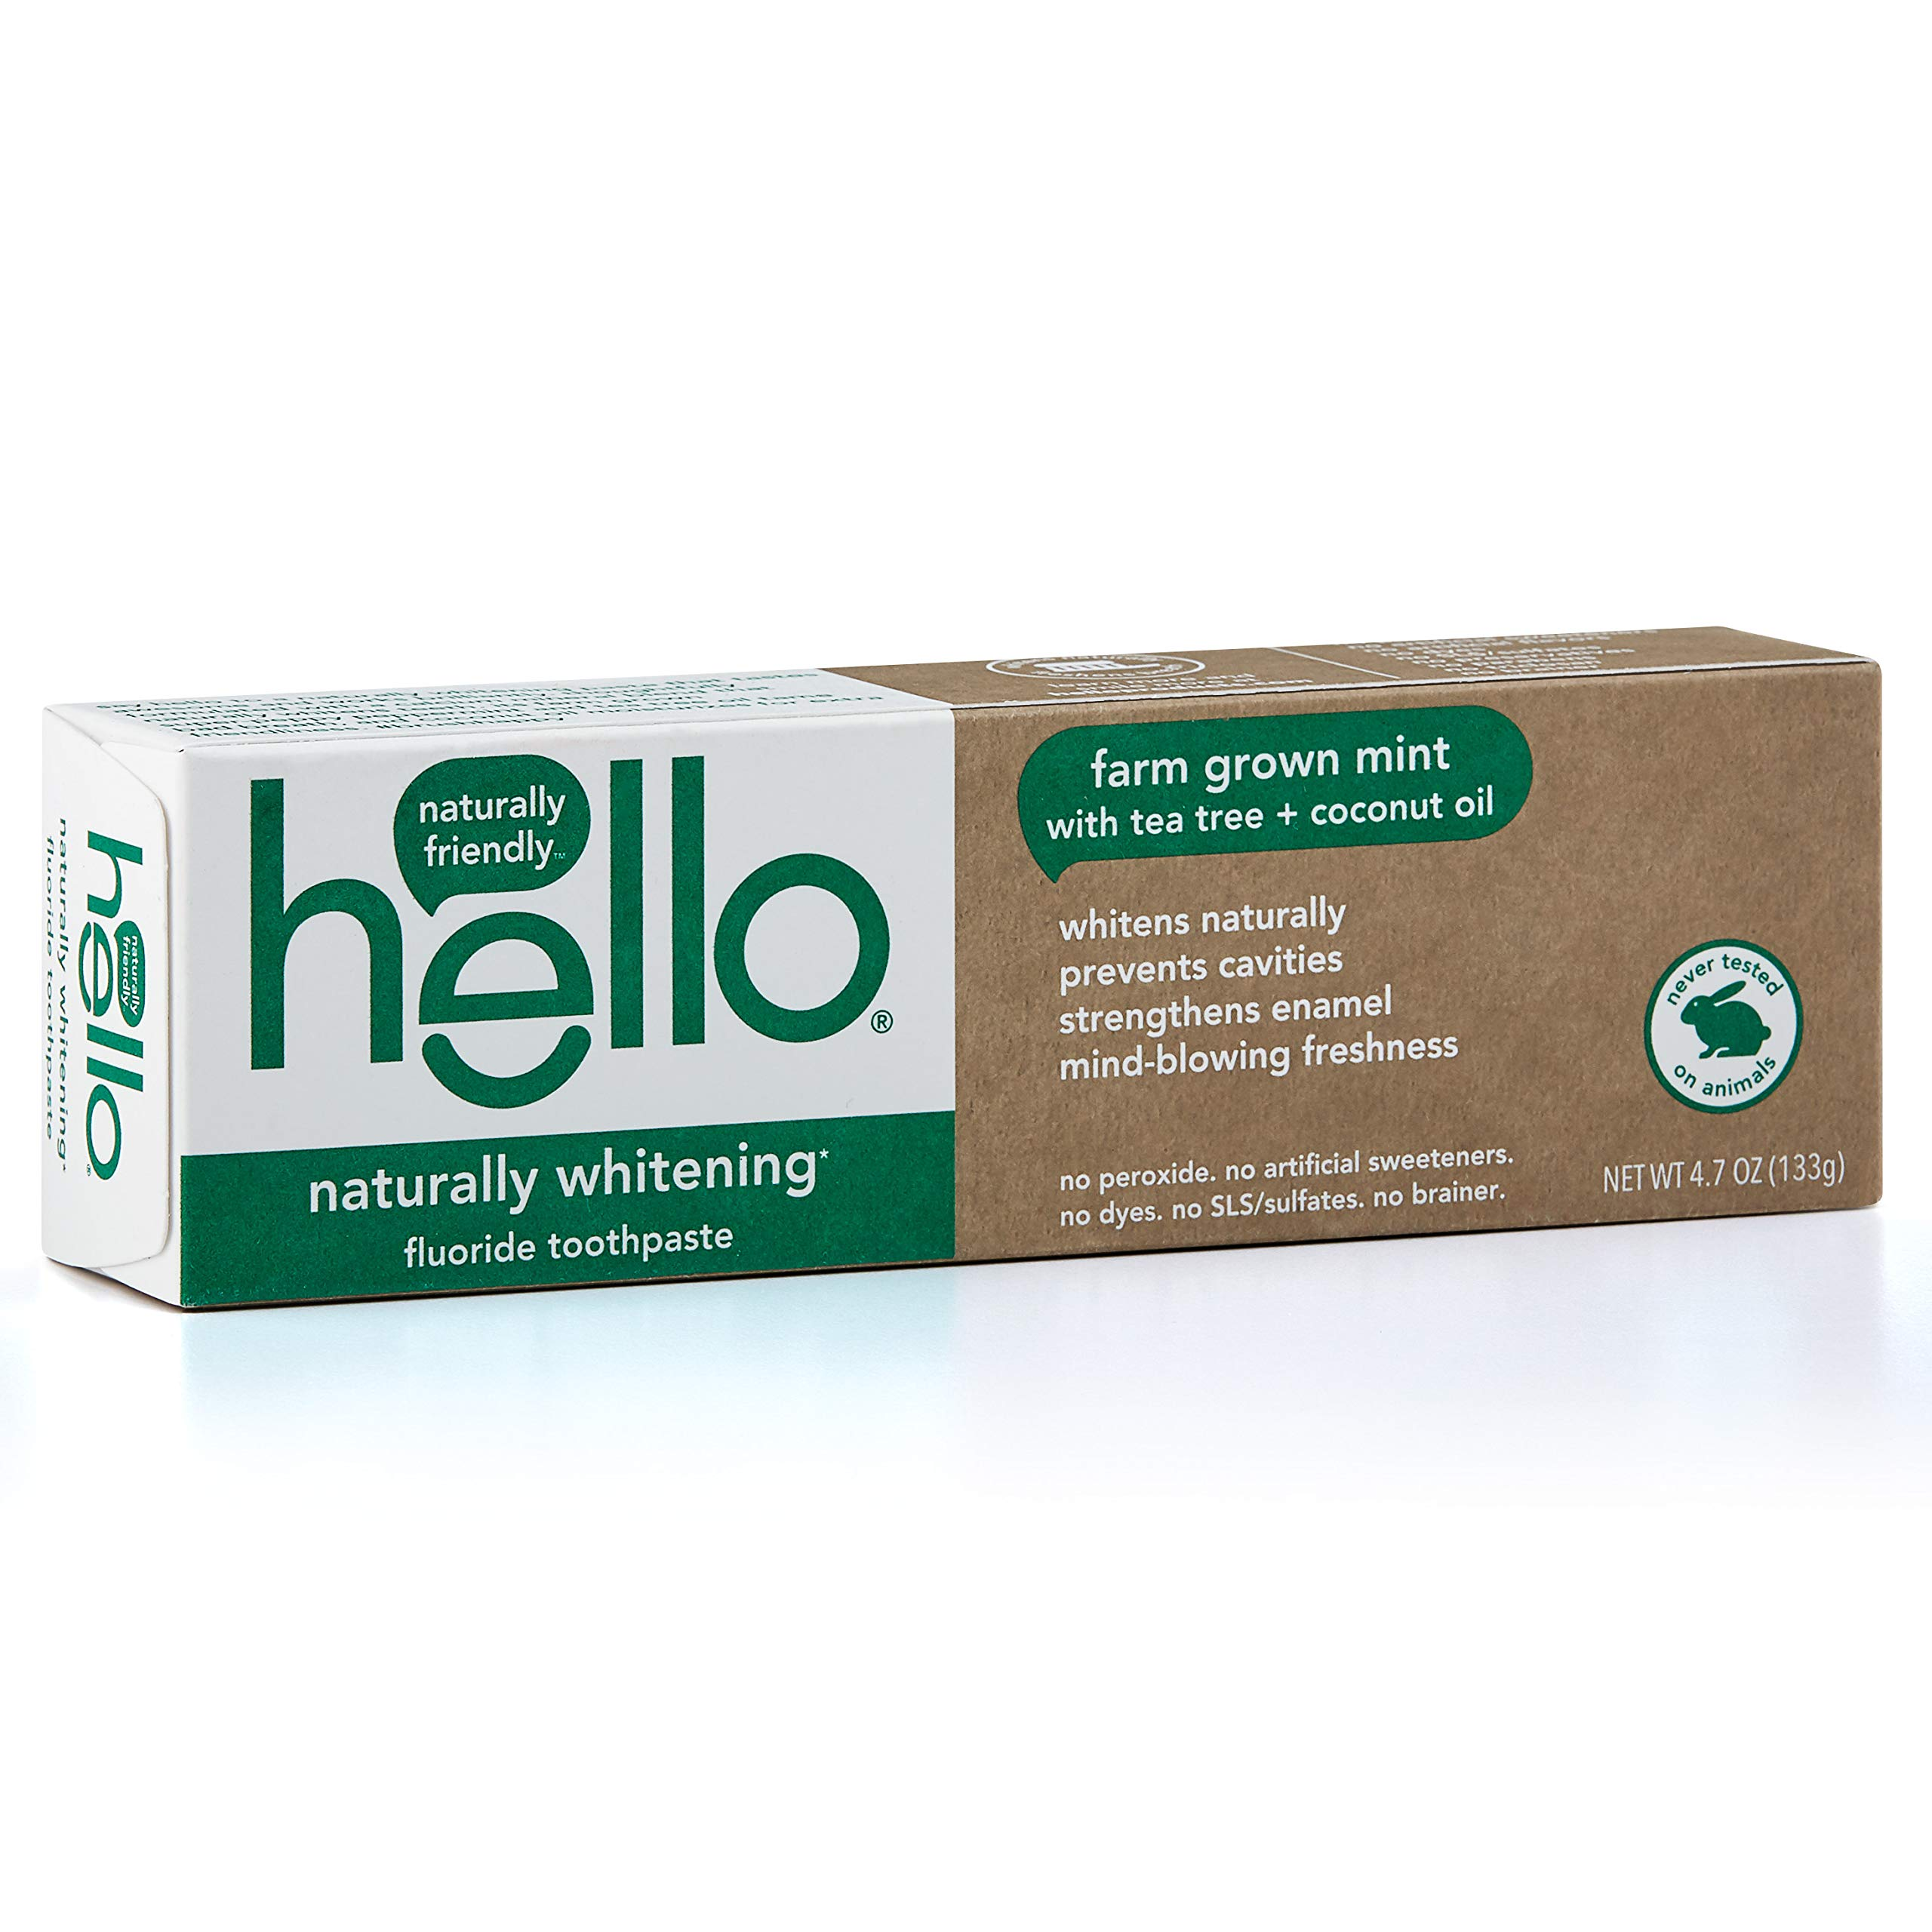 Hello Oral Care Naturally Whitening Fluoride Toothpaste, Vegan & SLS Free, Farm Grown Mint with Tea Tree Oil & Coconut Oil, 4.7 Ounce